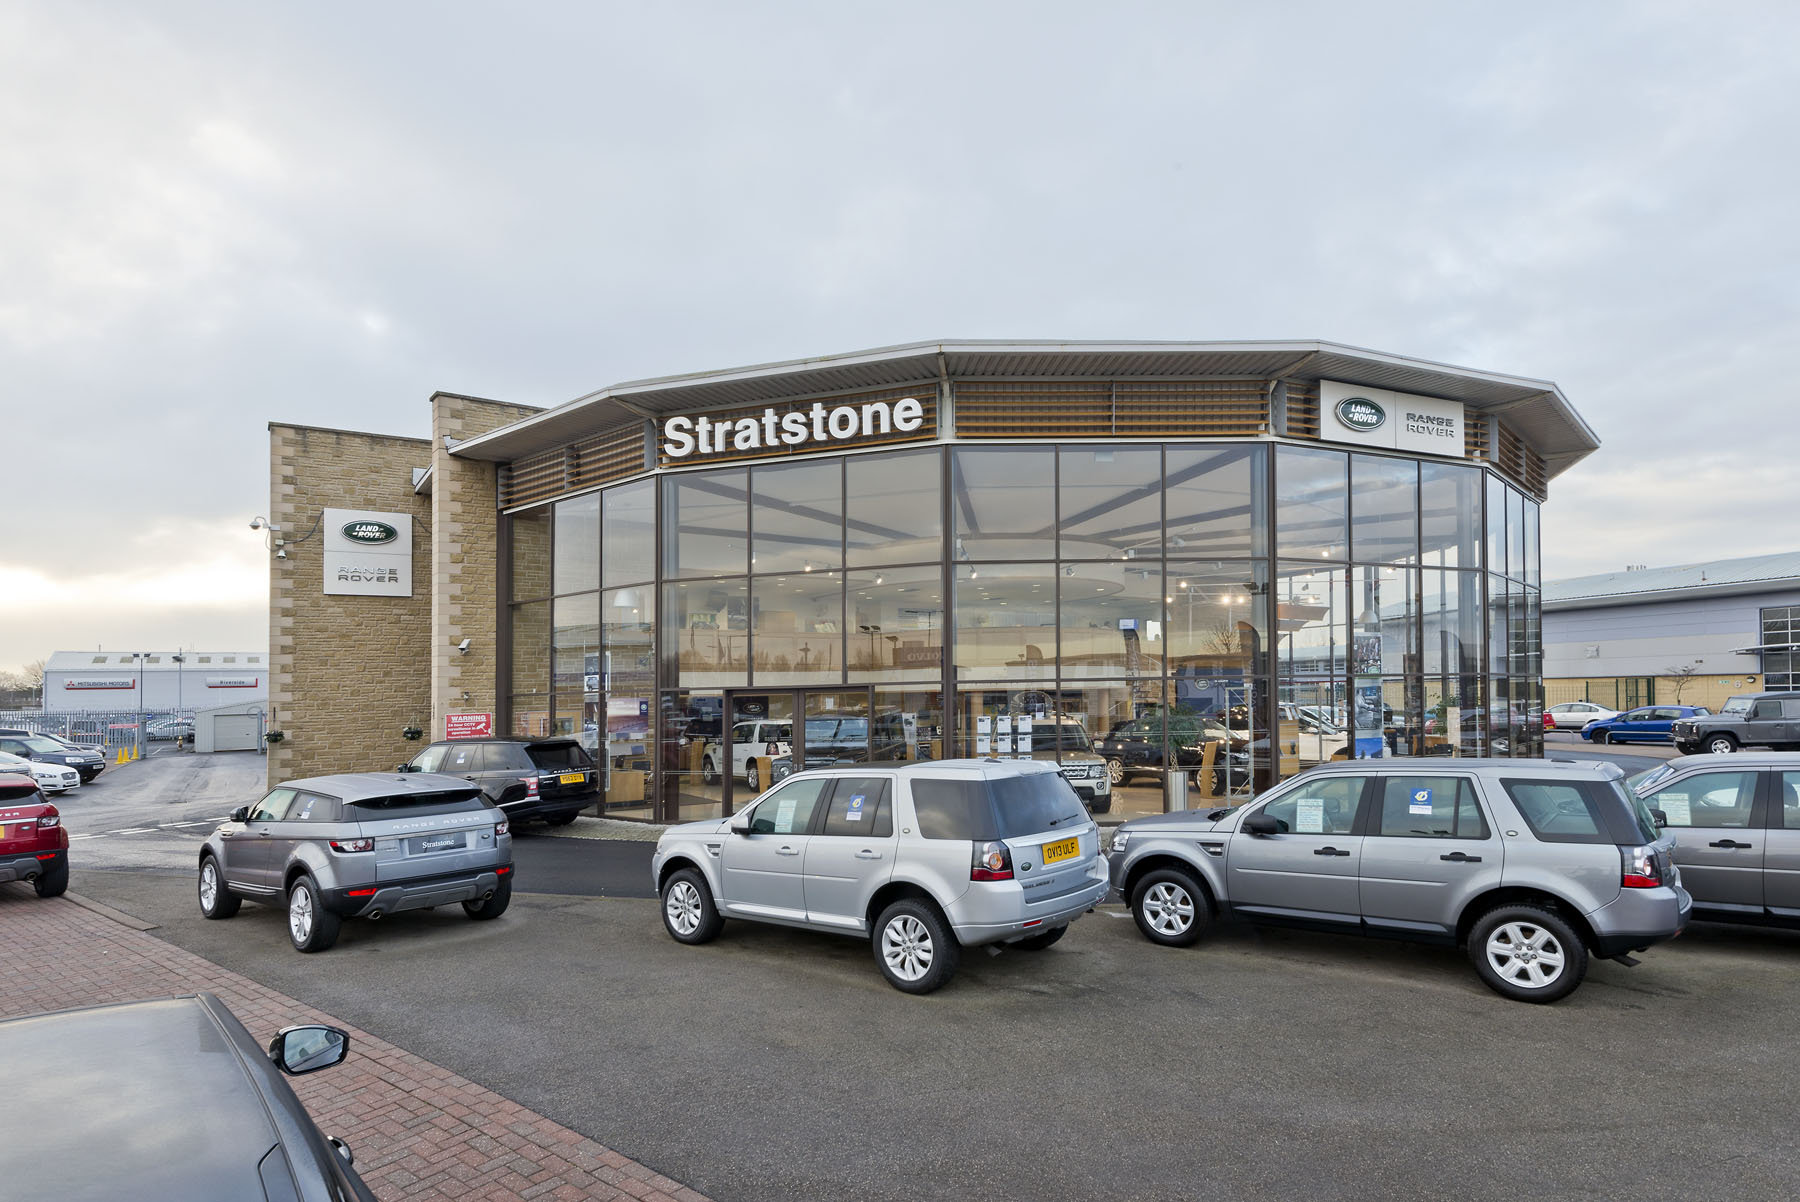 Jaguar Lease Deals Stratstone Used Vehicles For Sale In